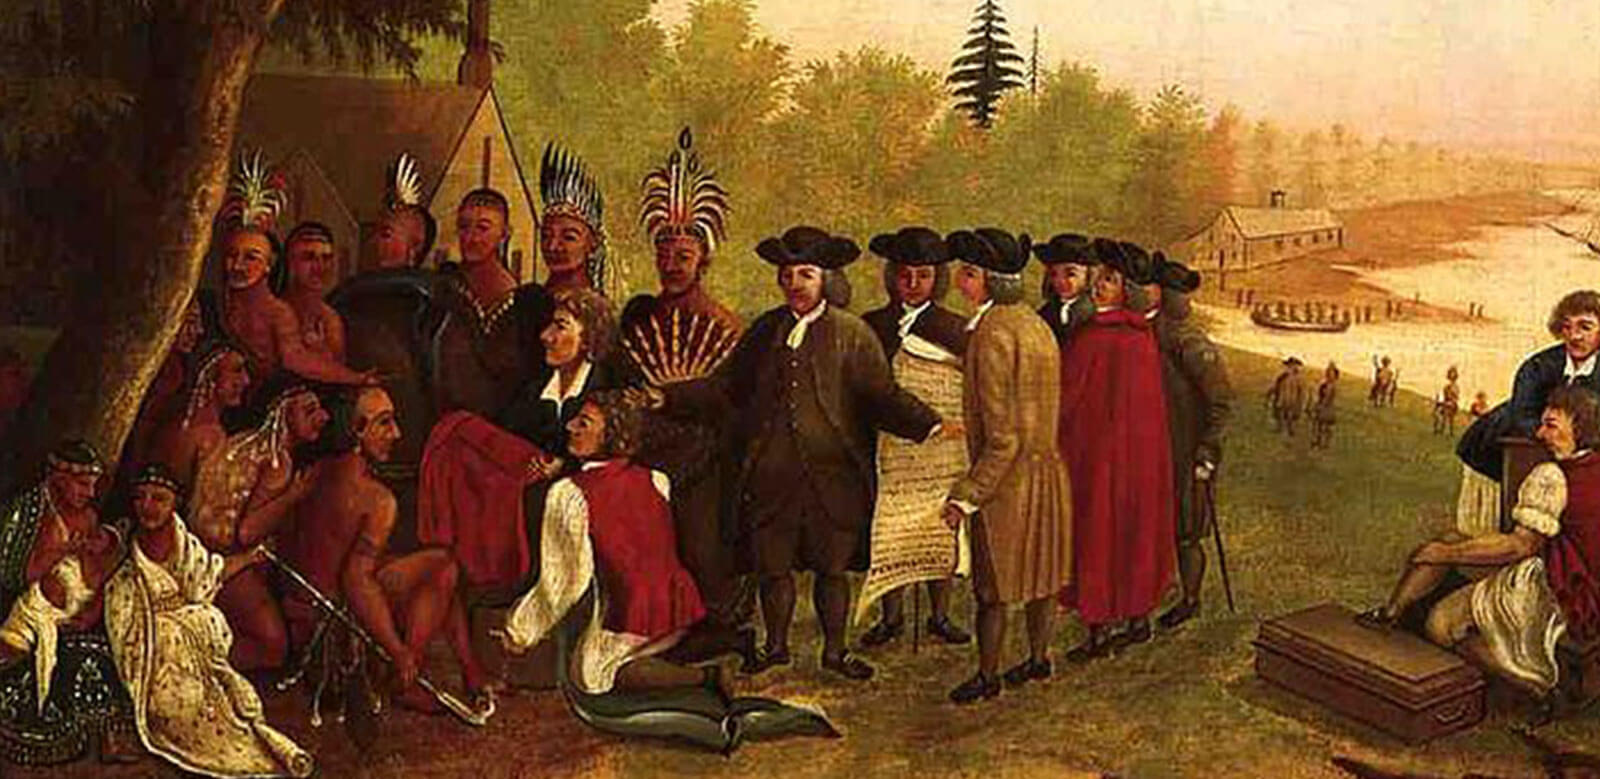 Foulkeways supports Quaker Values - Painting by Edward Hicks, Penn's Treaty with the Indians